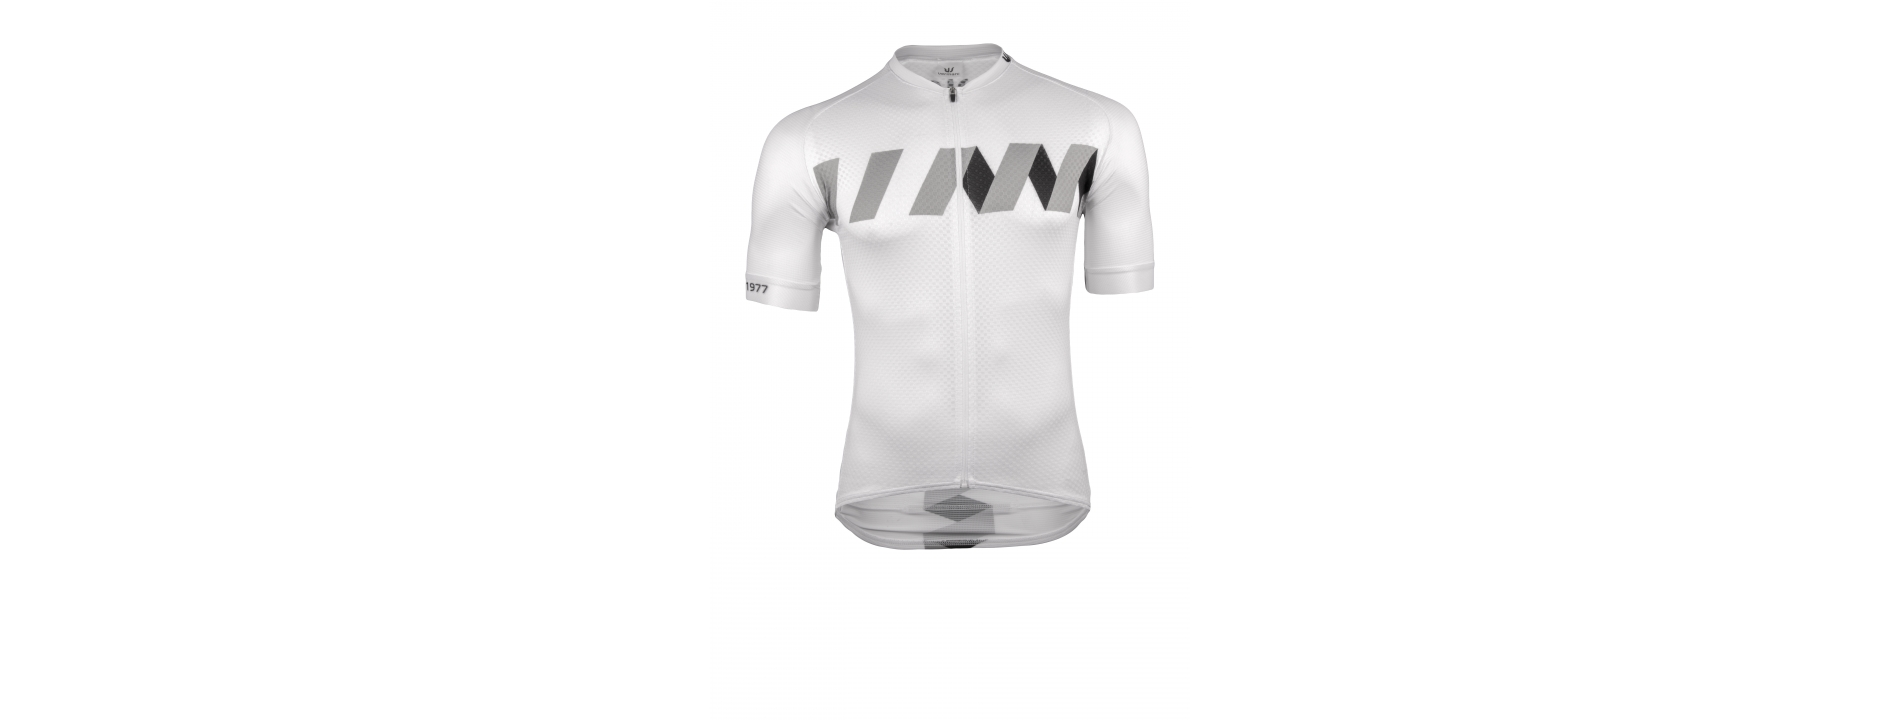 Winn White-Black Summer Jersey - Garments designed with an aerodynamic slim fit forming a second skin that makes every movement natural and comfortable.